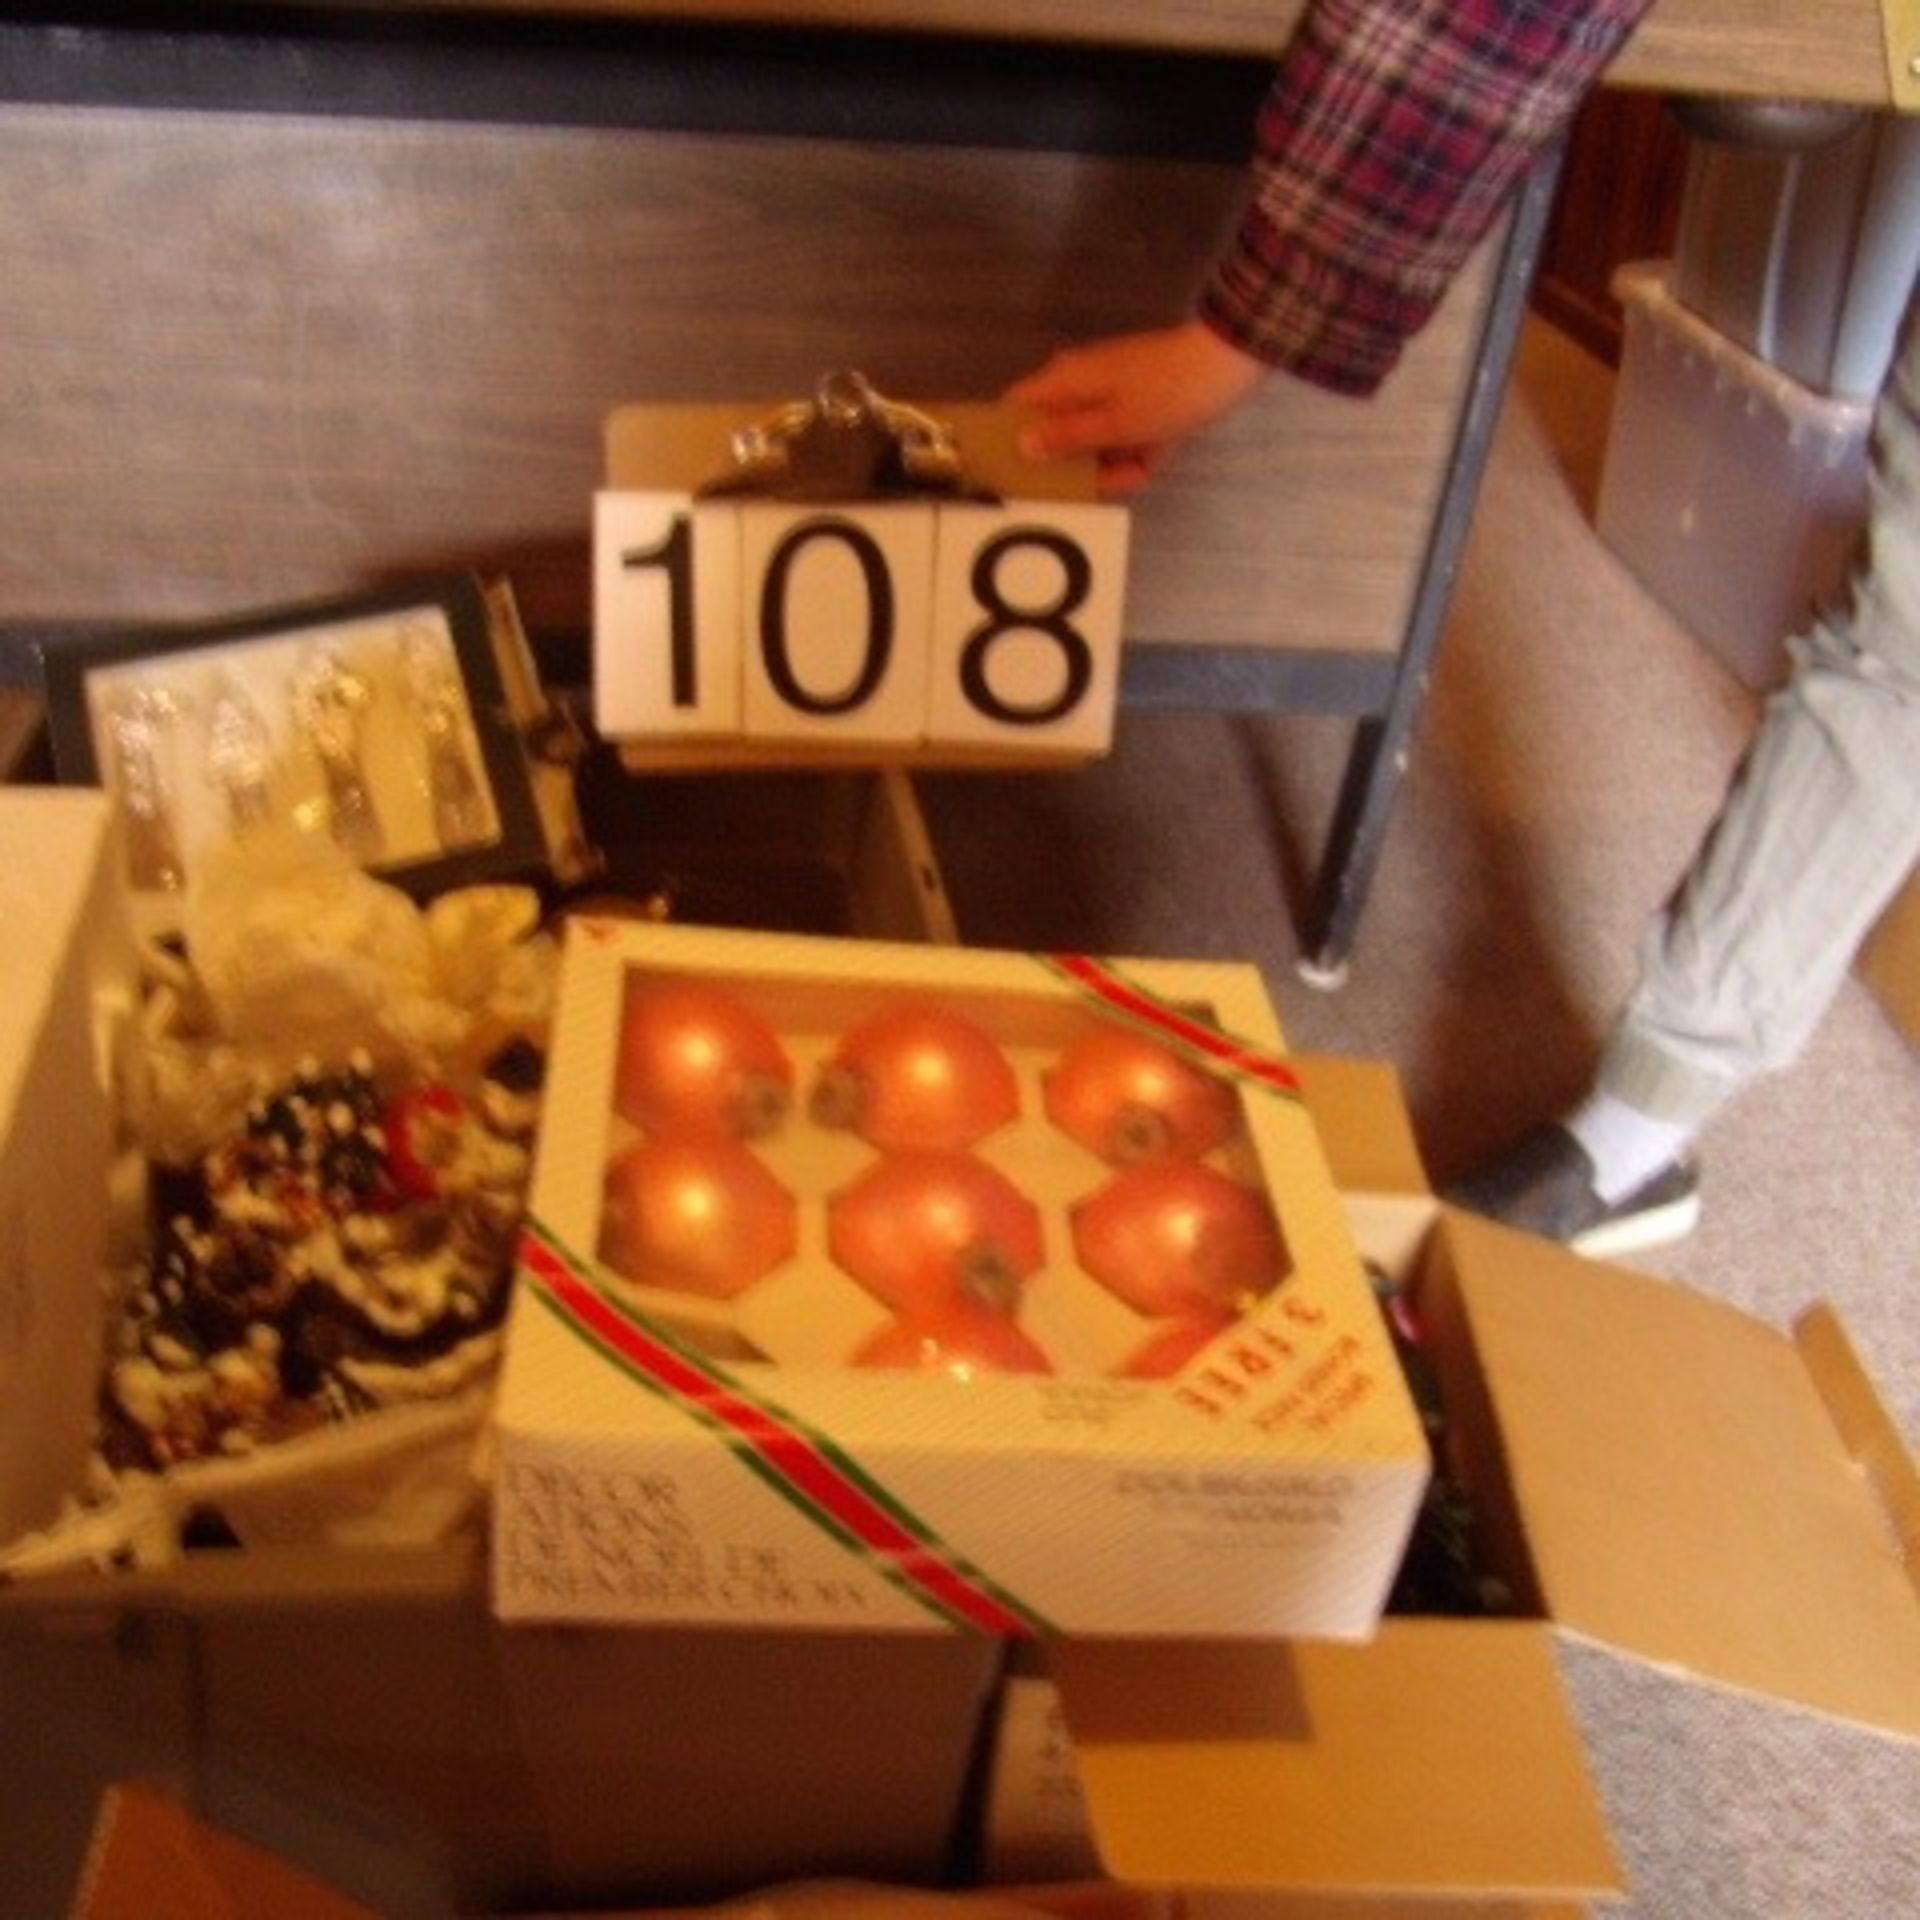 Boxes of Misc. Christmas decorations